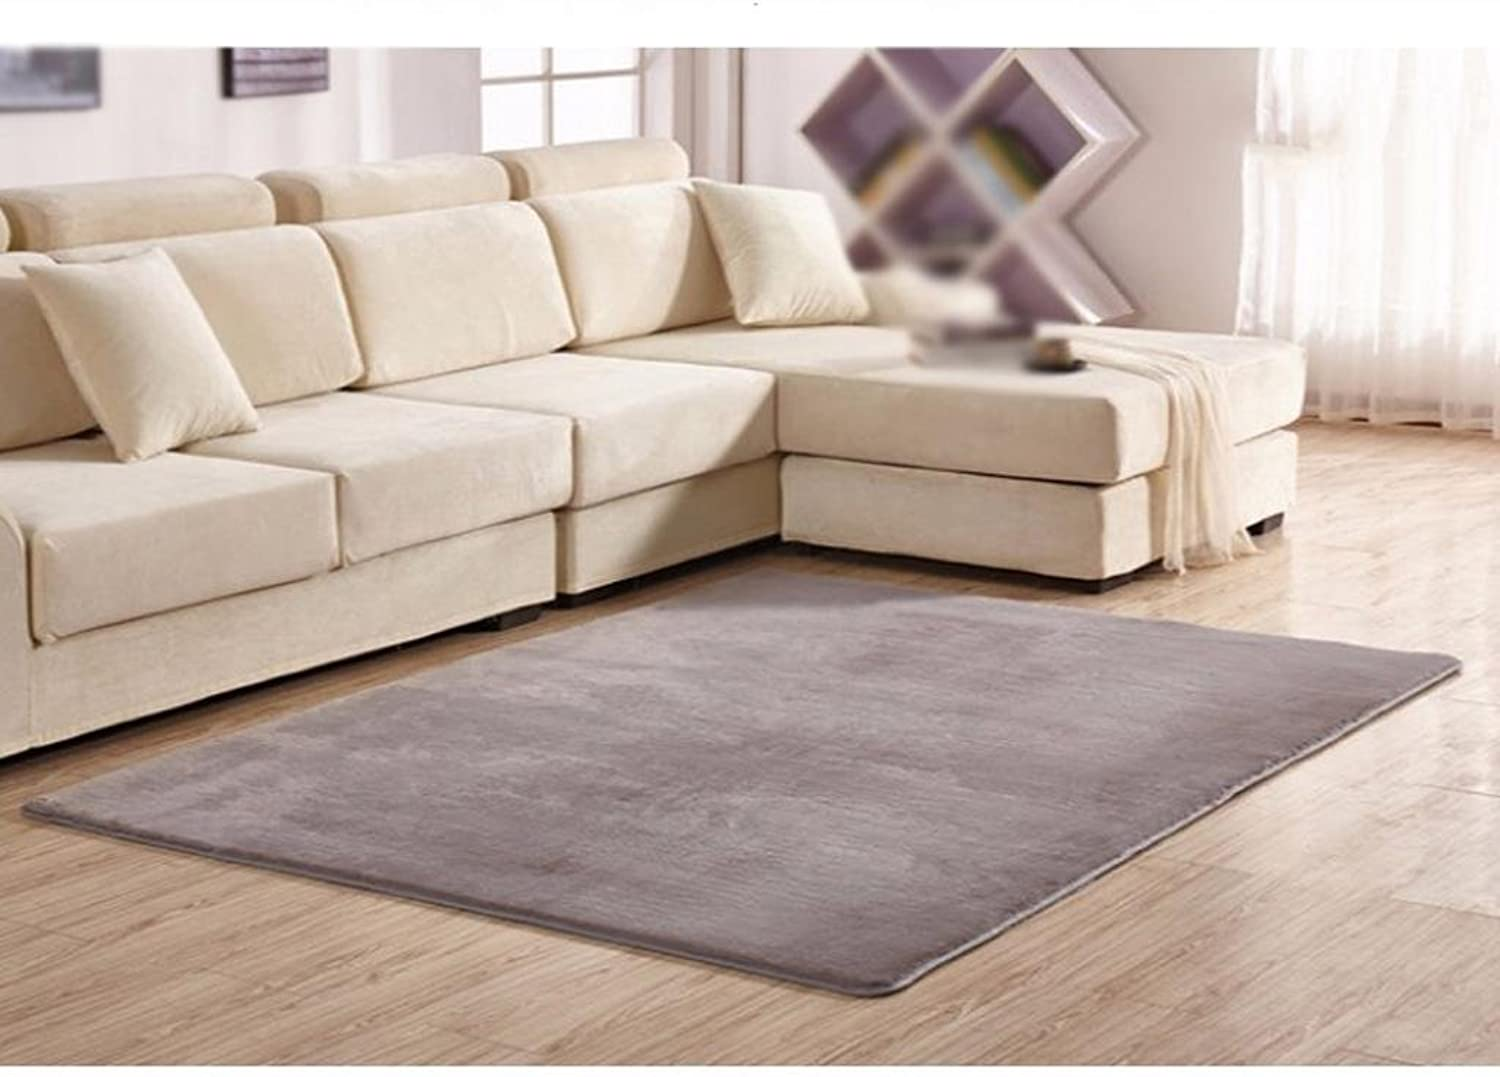 DYI velvet carpet, soft and smooth rectangular living room carpet, coffee table, bedroom bed mats.